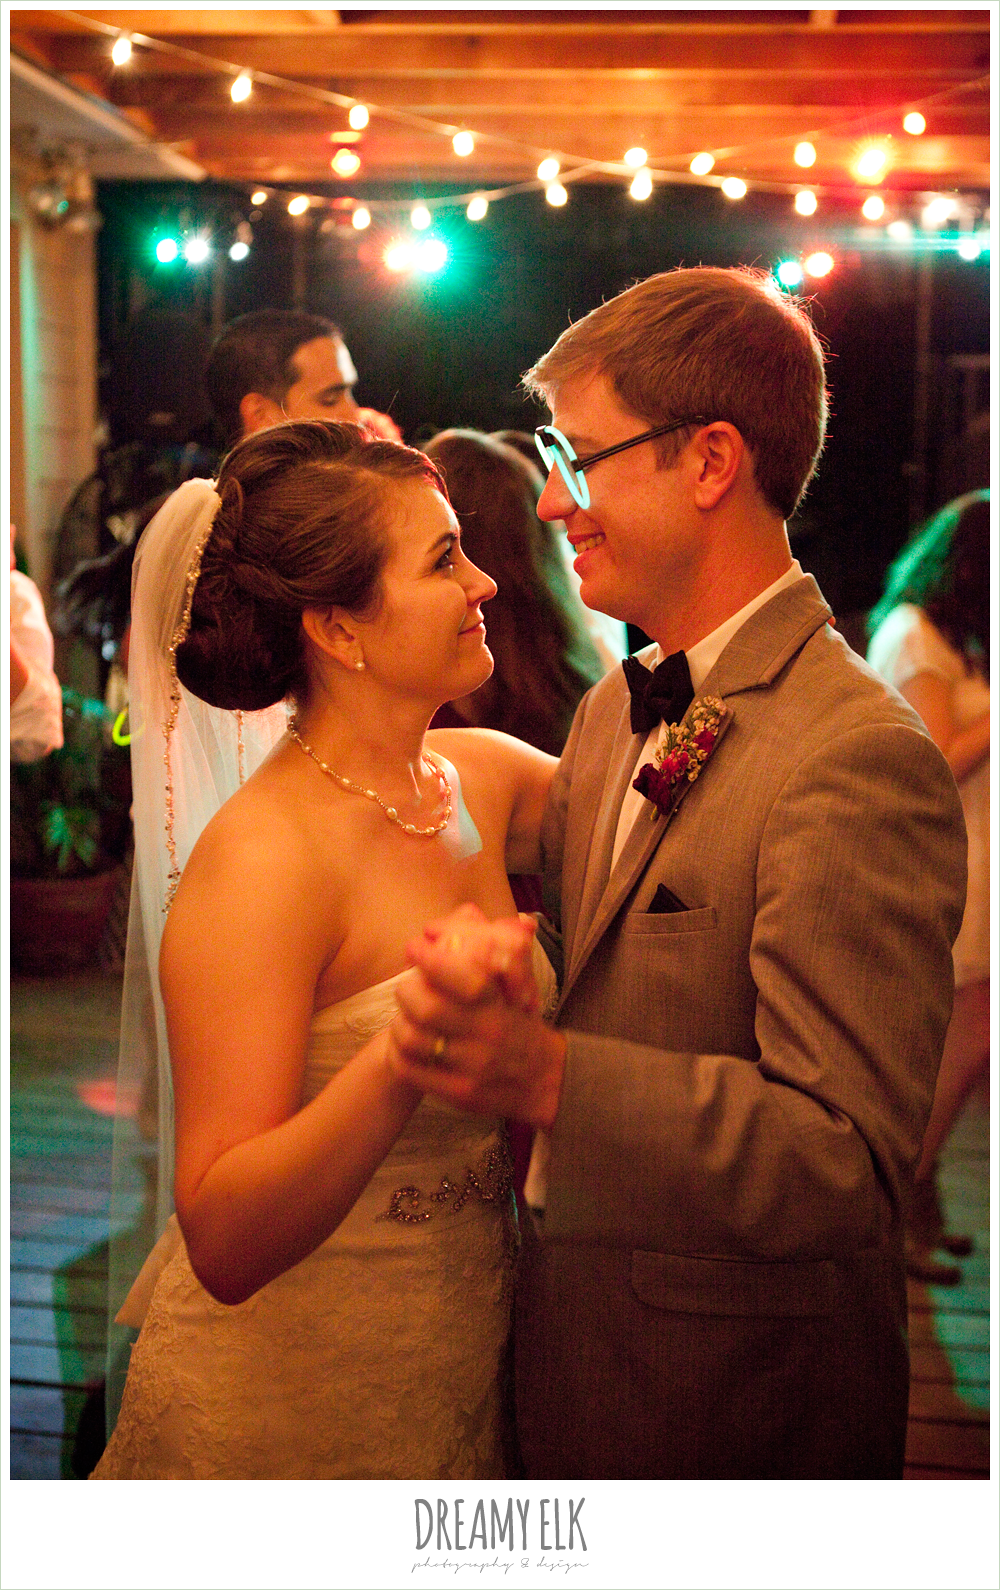 bride and groom dancing with glow sticks, october wedding, inn at quarry ridge, dreamy elk photography and design